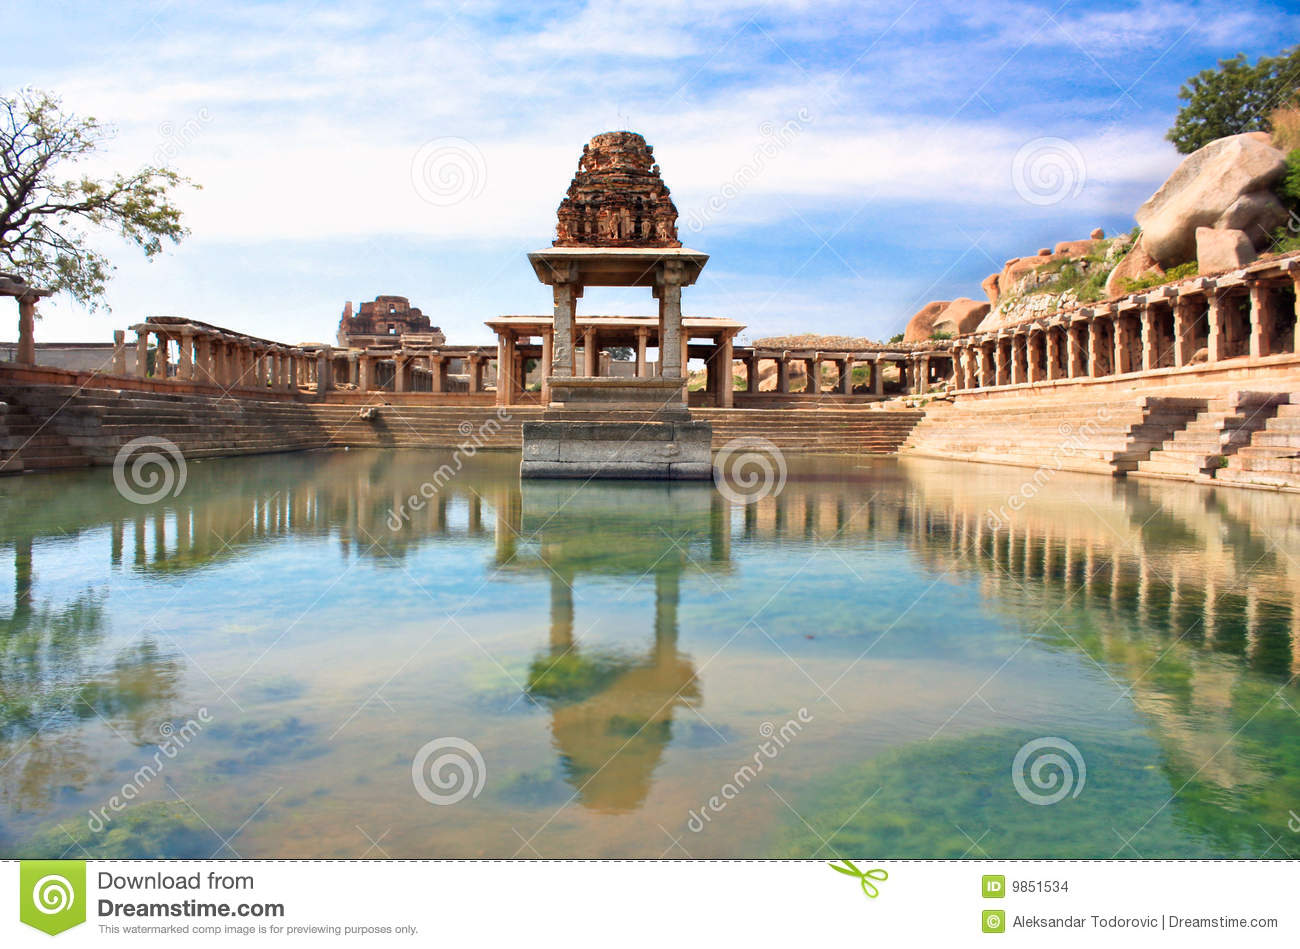 Ancient water pool and temple at Krishna market